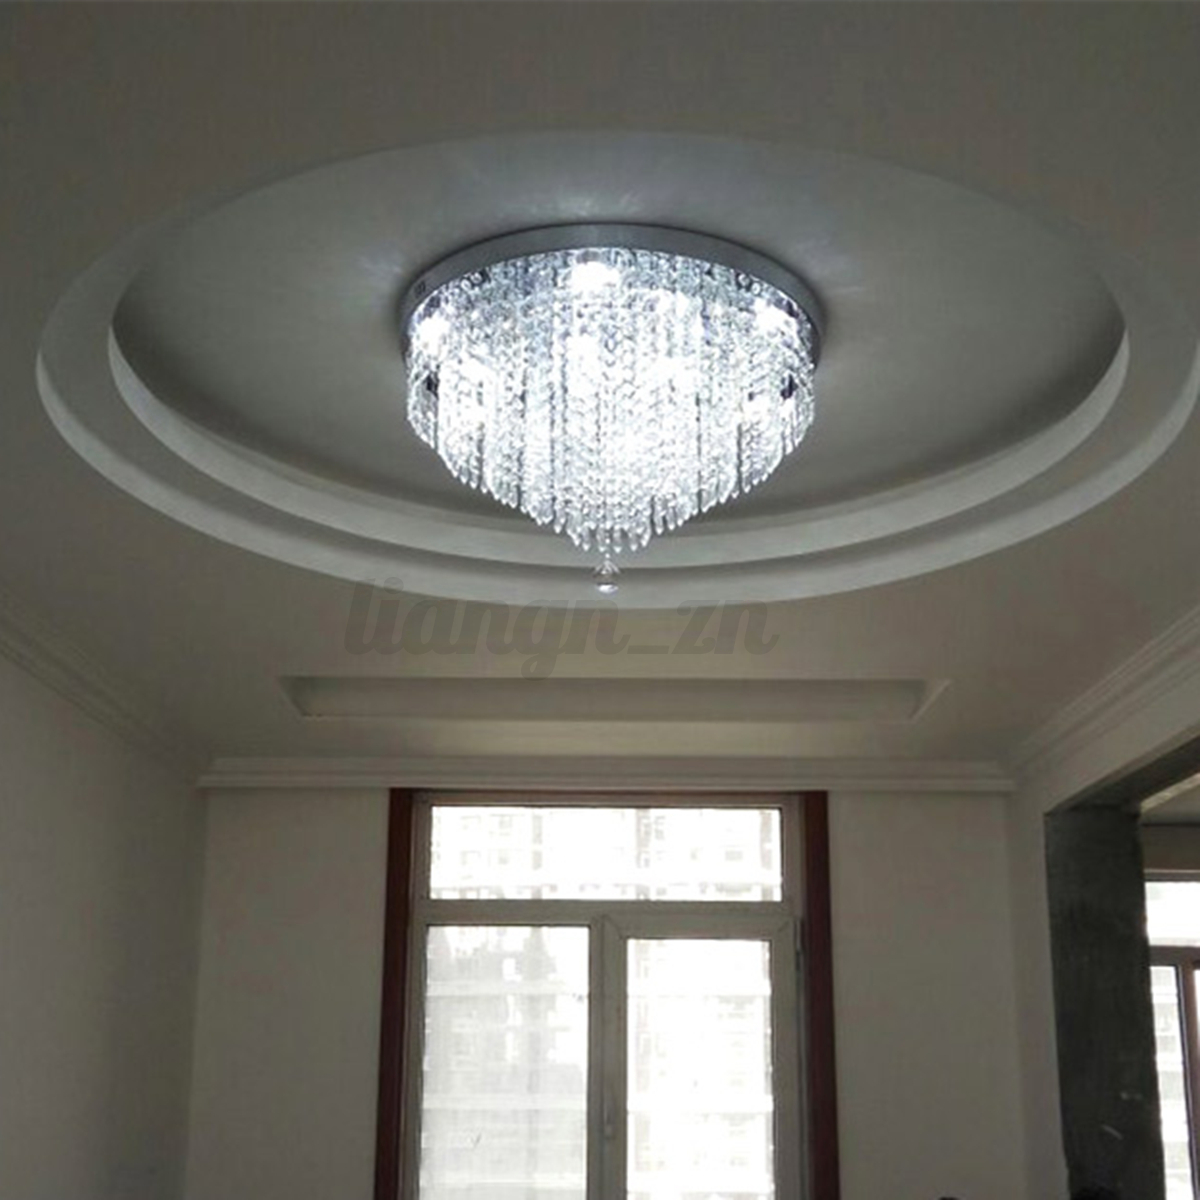 High Quality Modern Decorative Lighting National Ceiling: Modern LED Crystal Ceiling Light Pendant Lamp Fixture